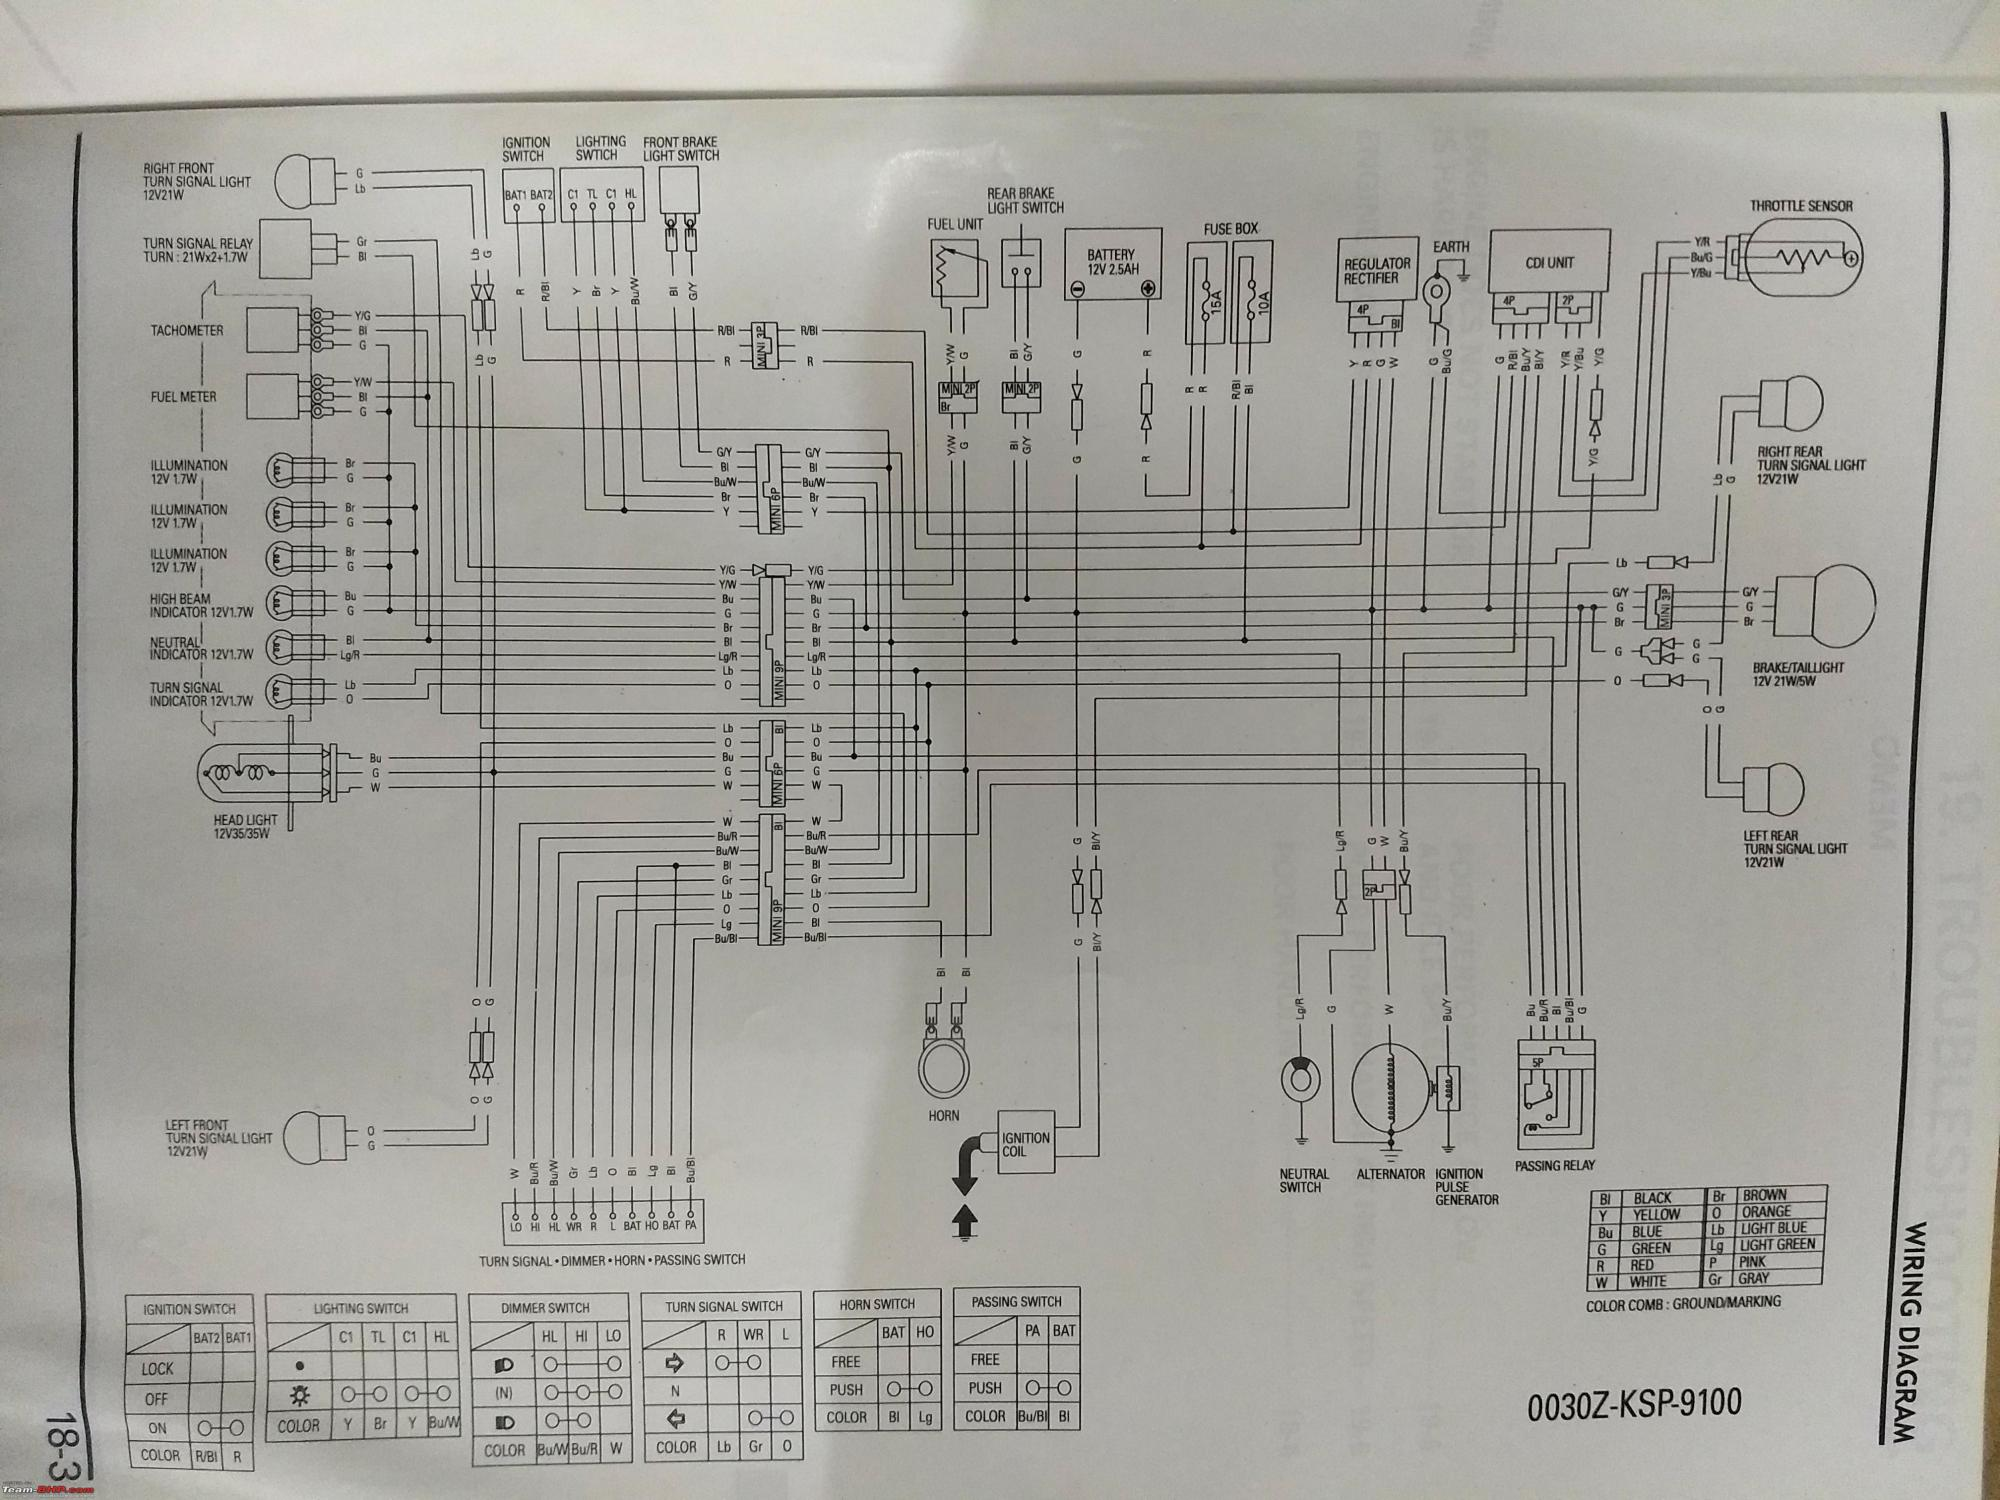 hight resolution of wiring diagrams of indian two wheelers img 20171230 0834159114 jpg